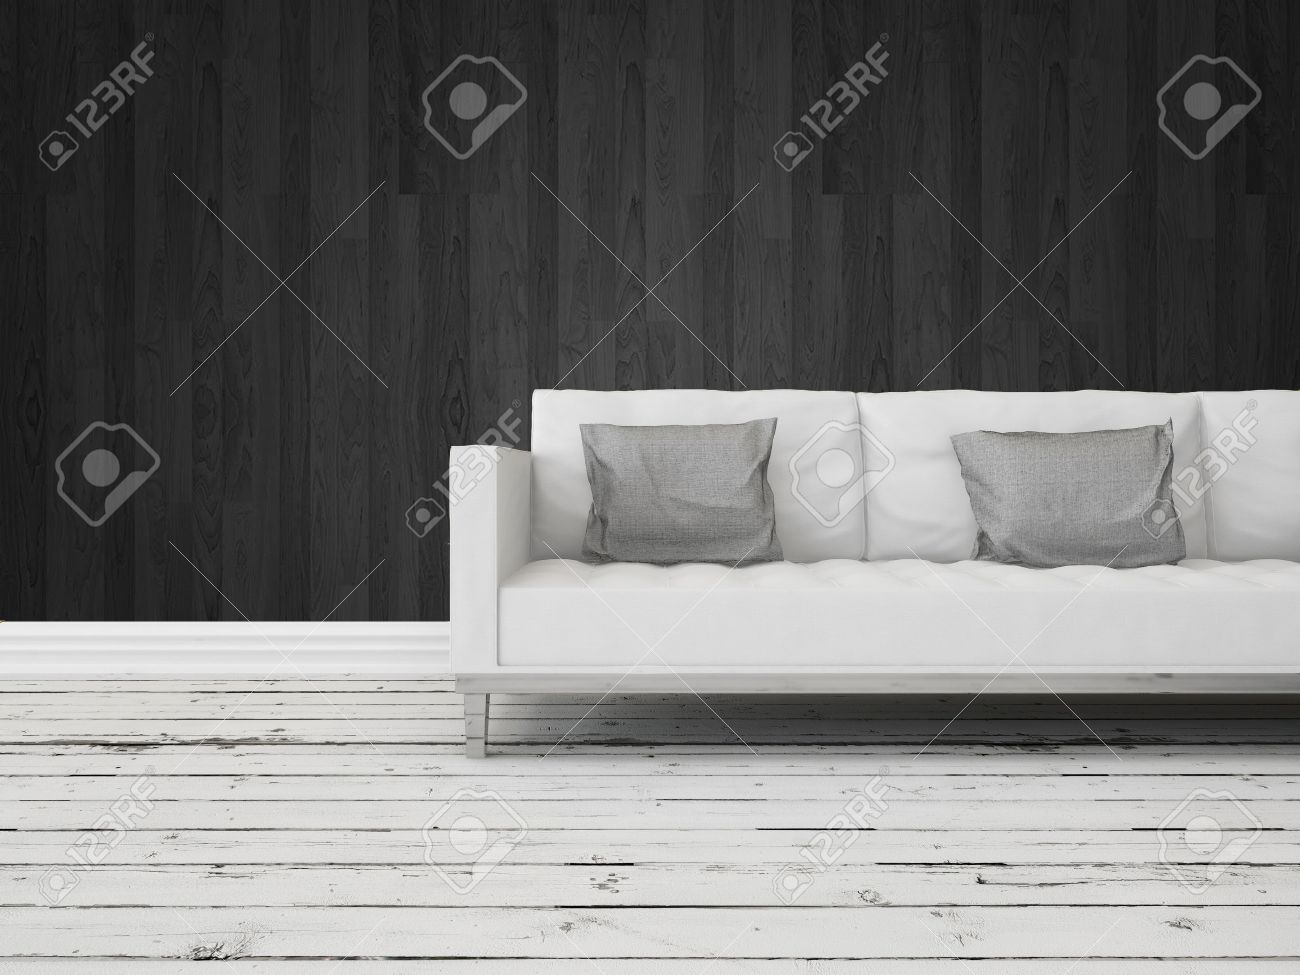 Black And White Interior Decor Background With A Generic Modern White Sofa  Against A Dark Wall